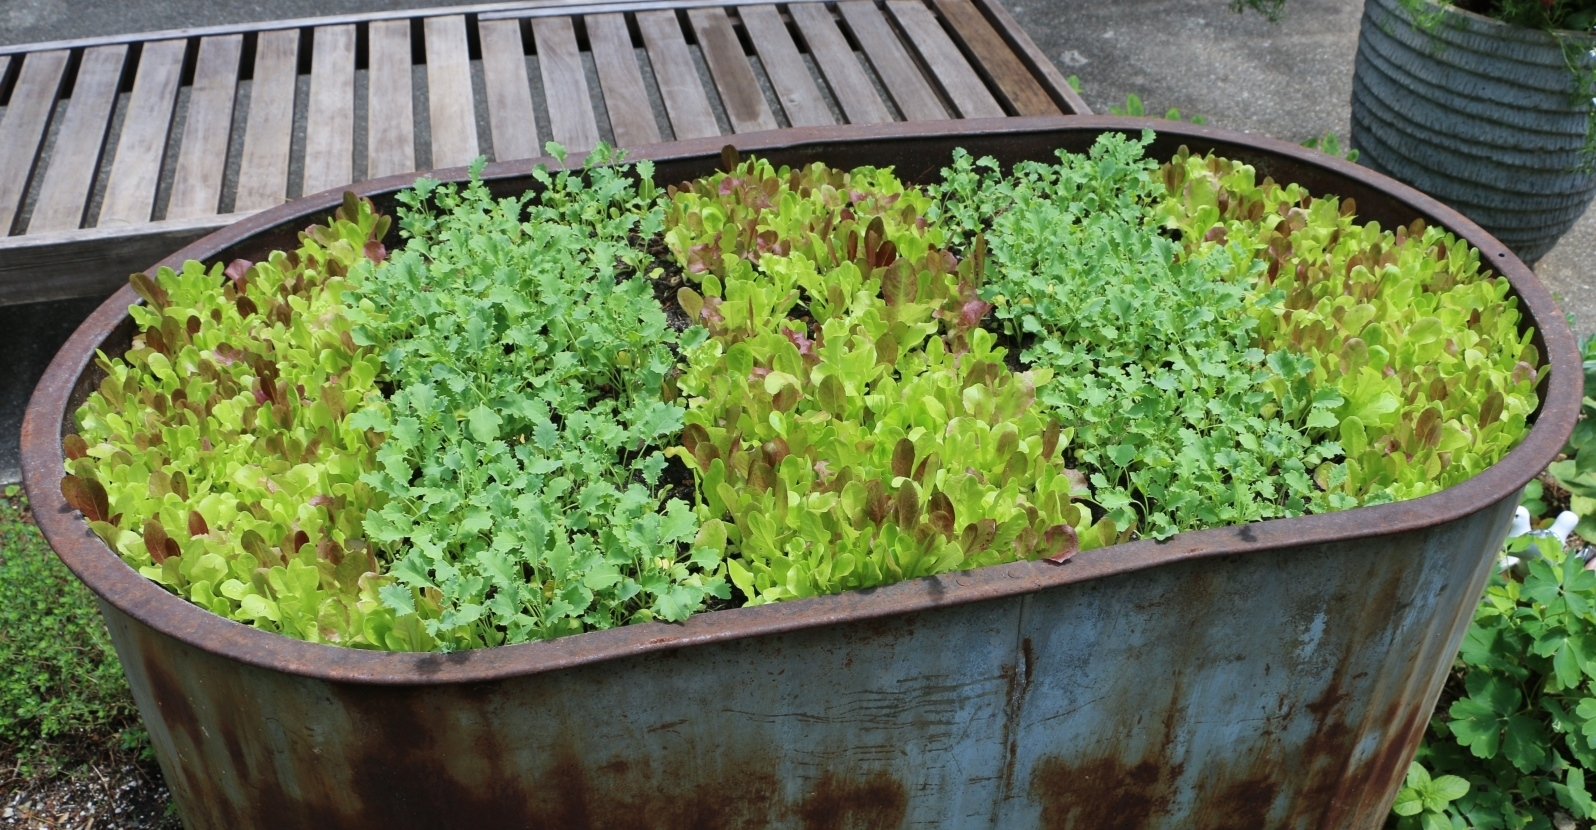 Leafy Greens – Fall-friendly Crops Extend the Harvest Season